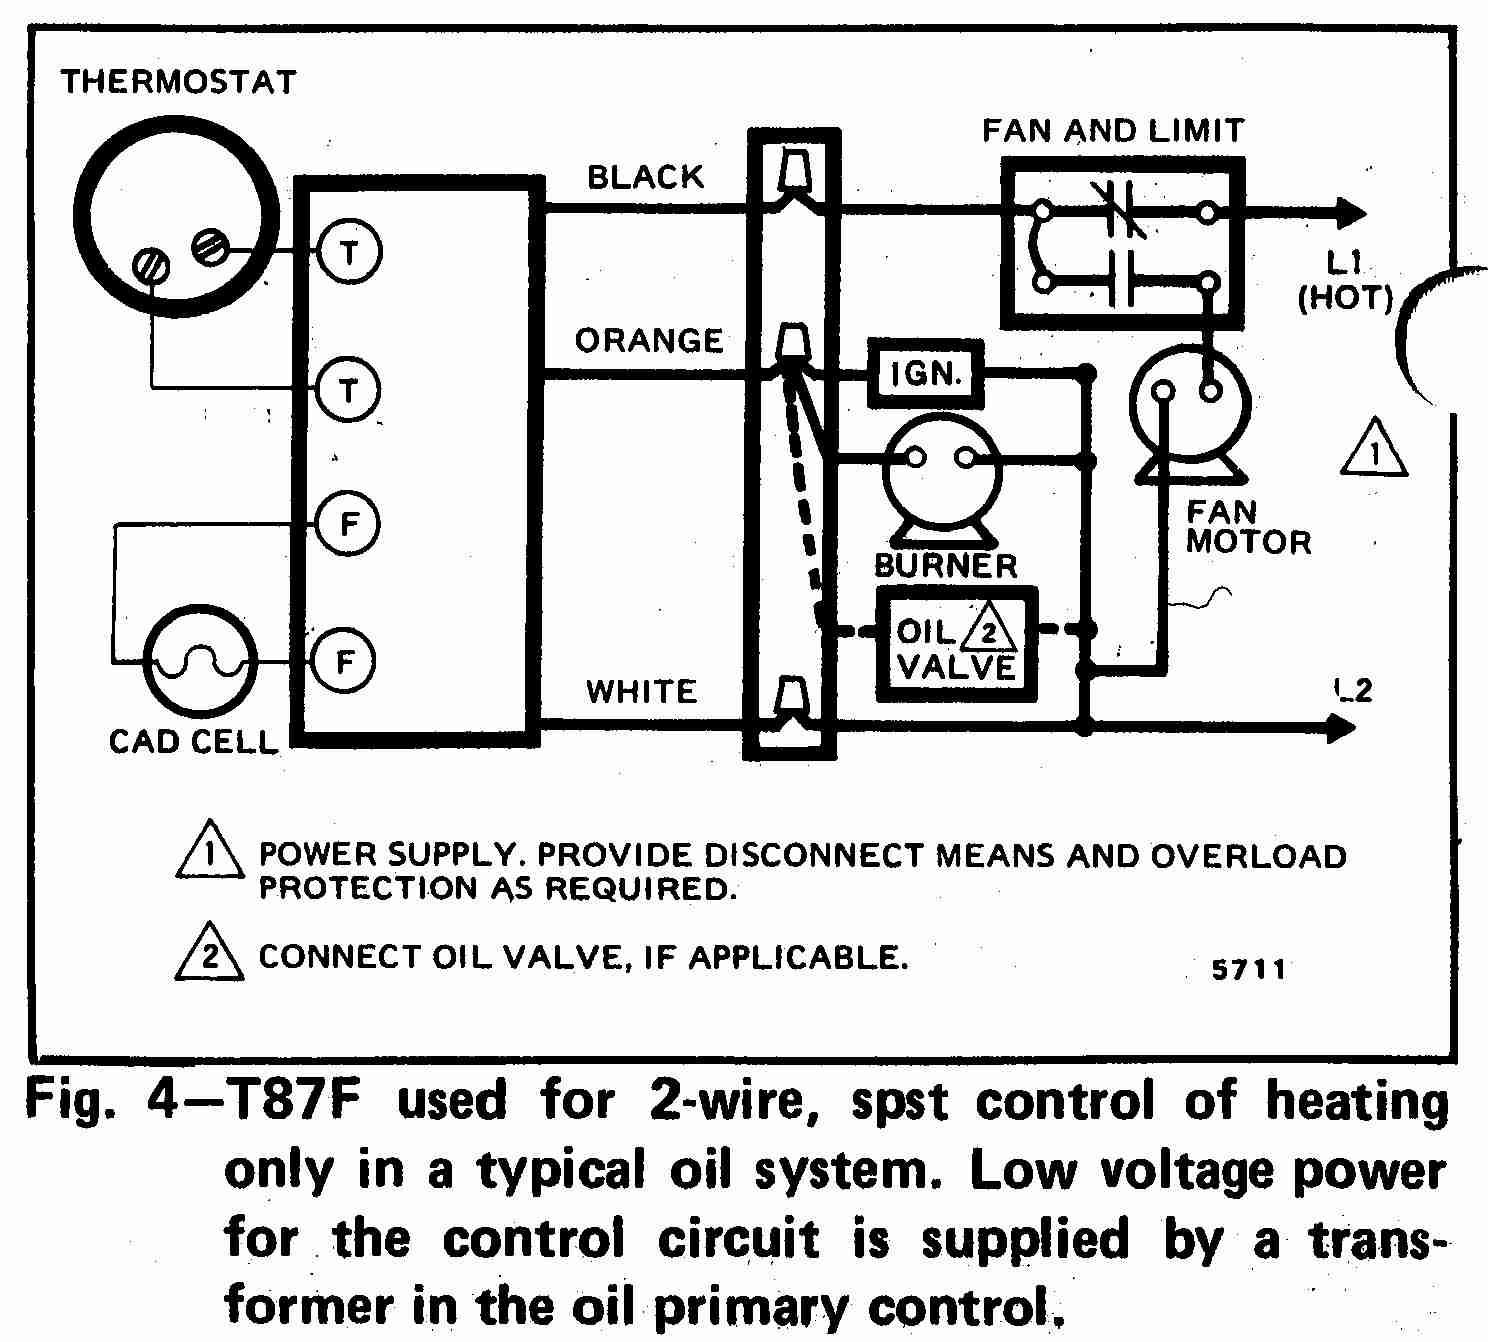 hight resolution of room thermostat wiring diagrams for hvac systems wiring diagram in addition central air conditioner thermostat wiring